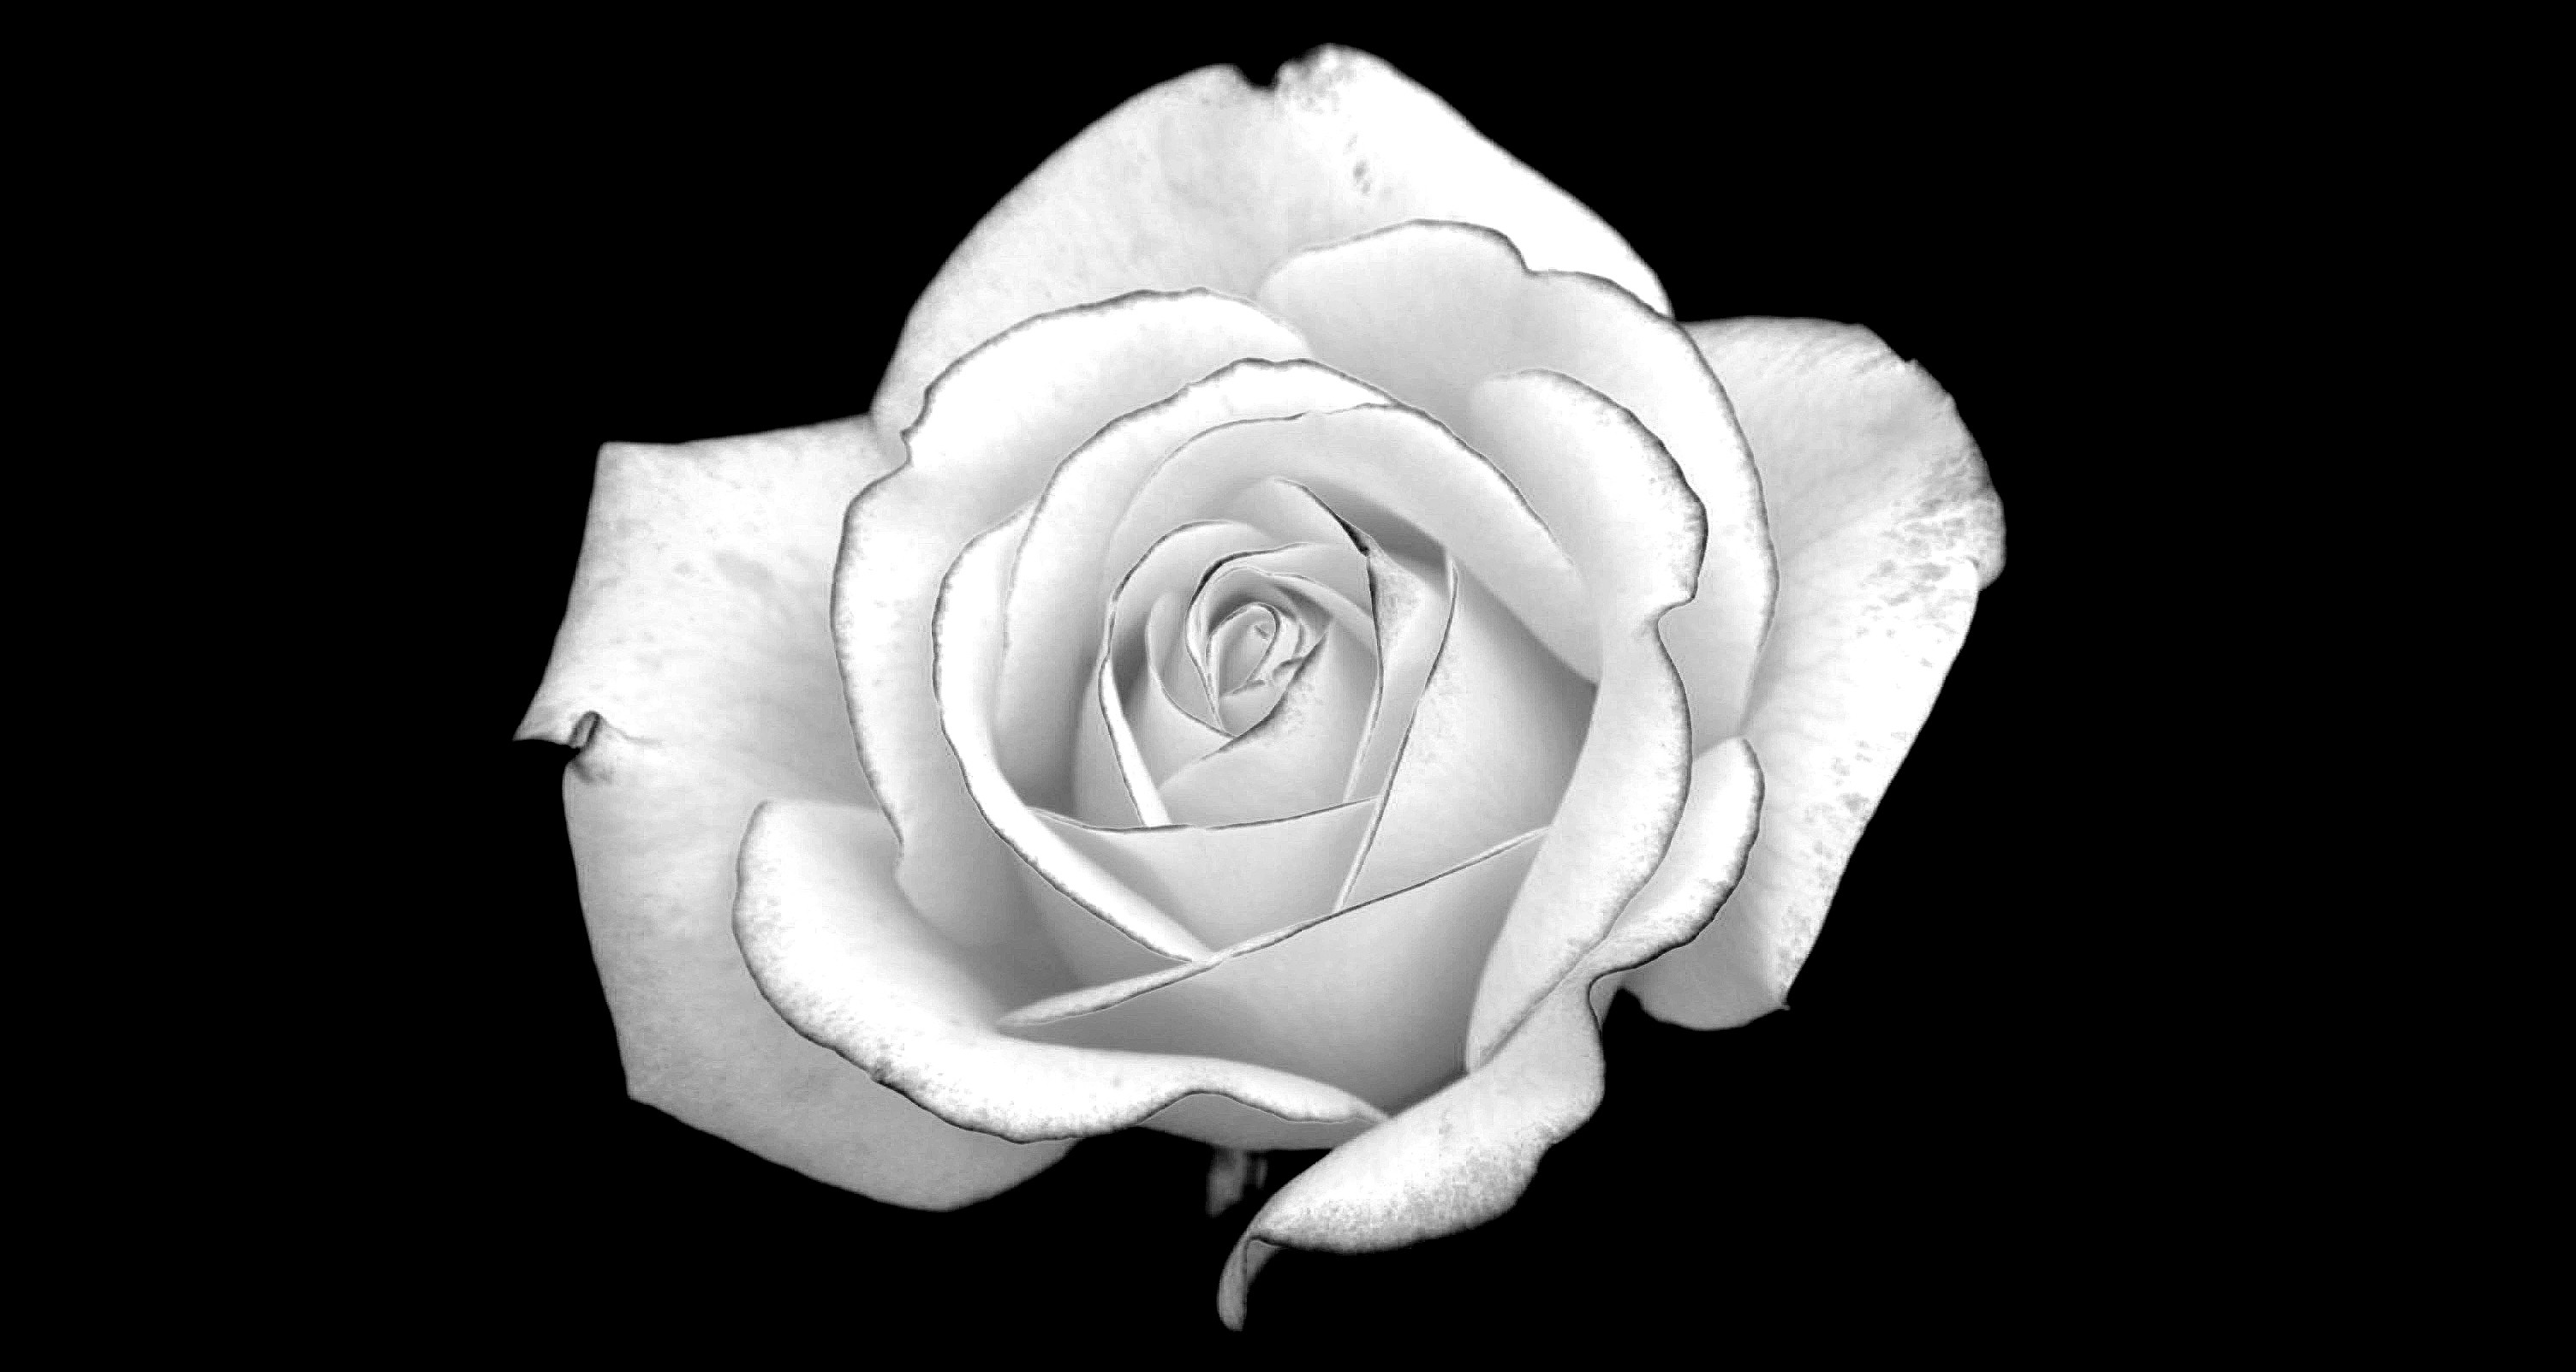 White Roses Black Background (35 Wallpapers)